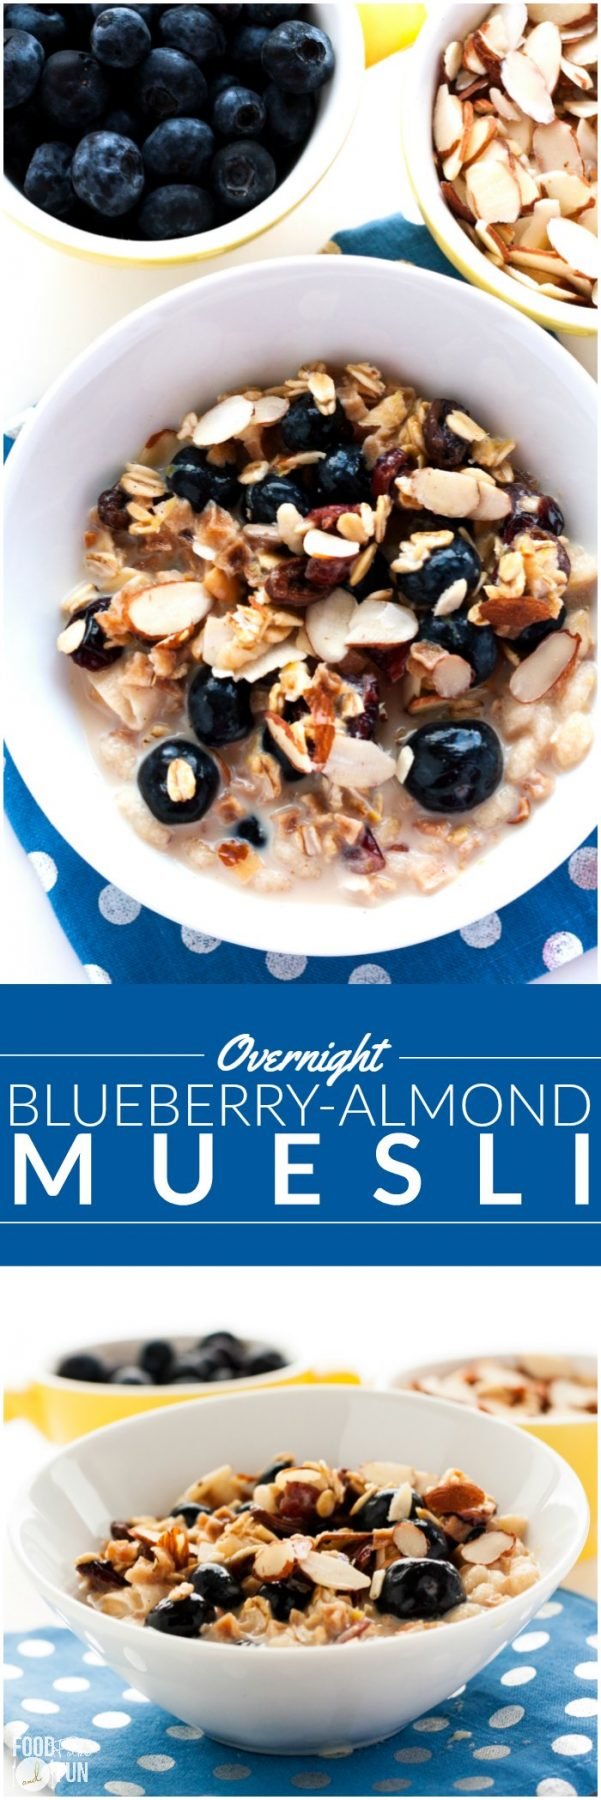 This Overnight Blueberry-Almond Muesli recipe is an easy grab-and-go breakfast for busy weekday mornings.